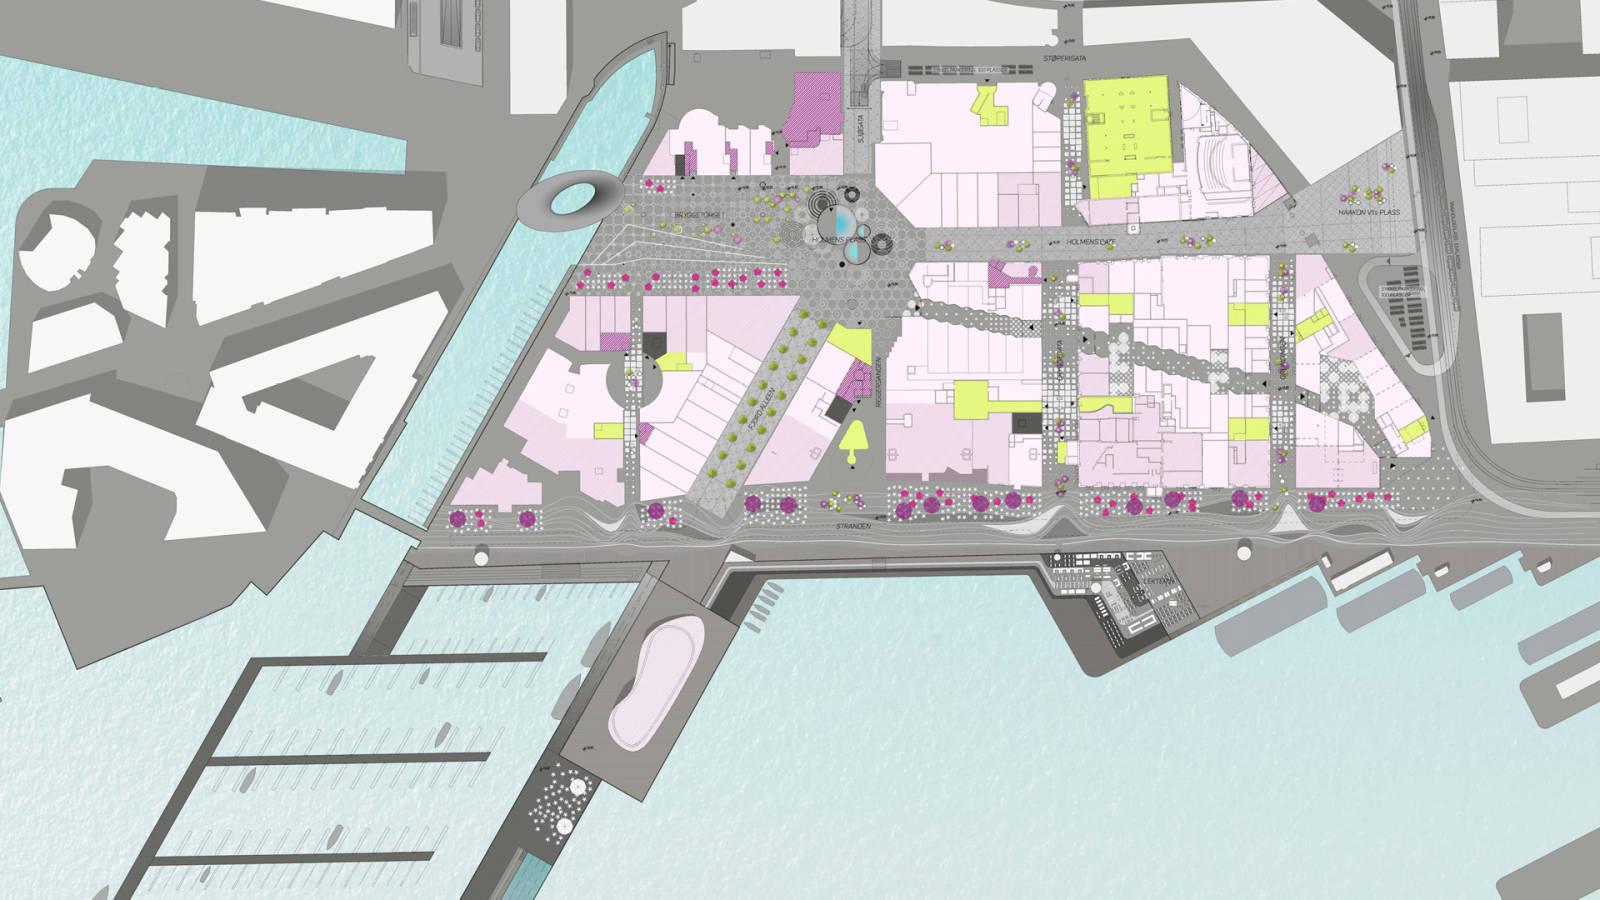 PLAN - Aker Brygge Masterplan - SPOL Architects